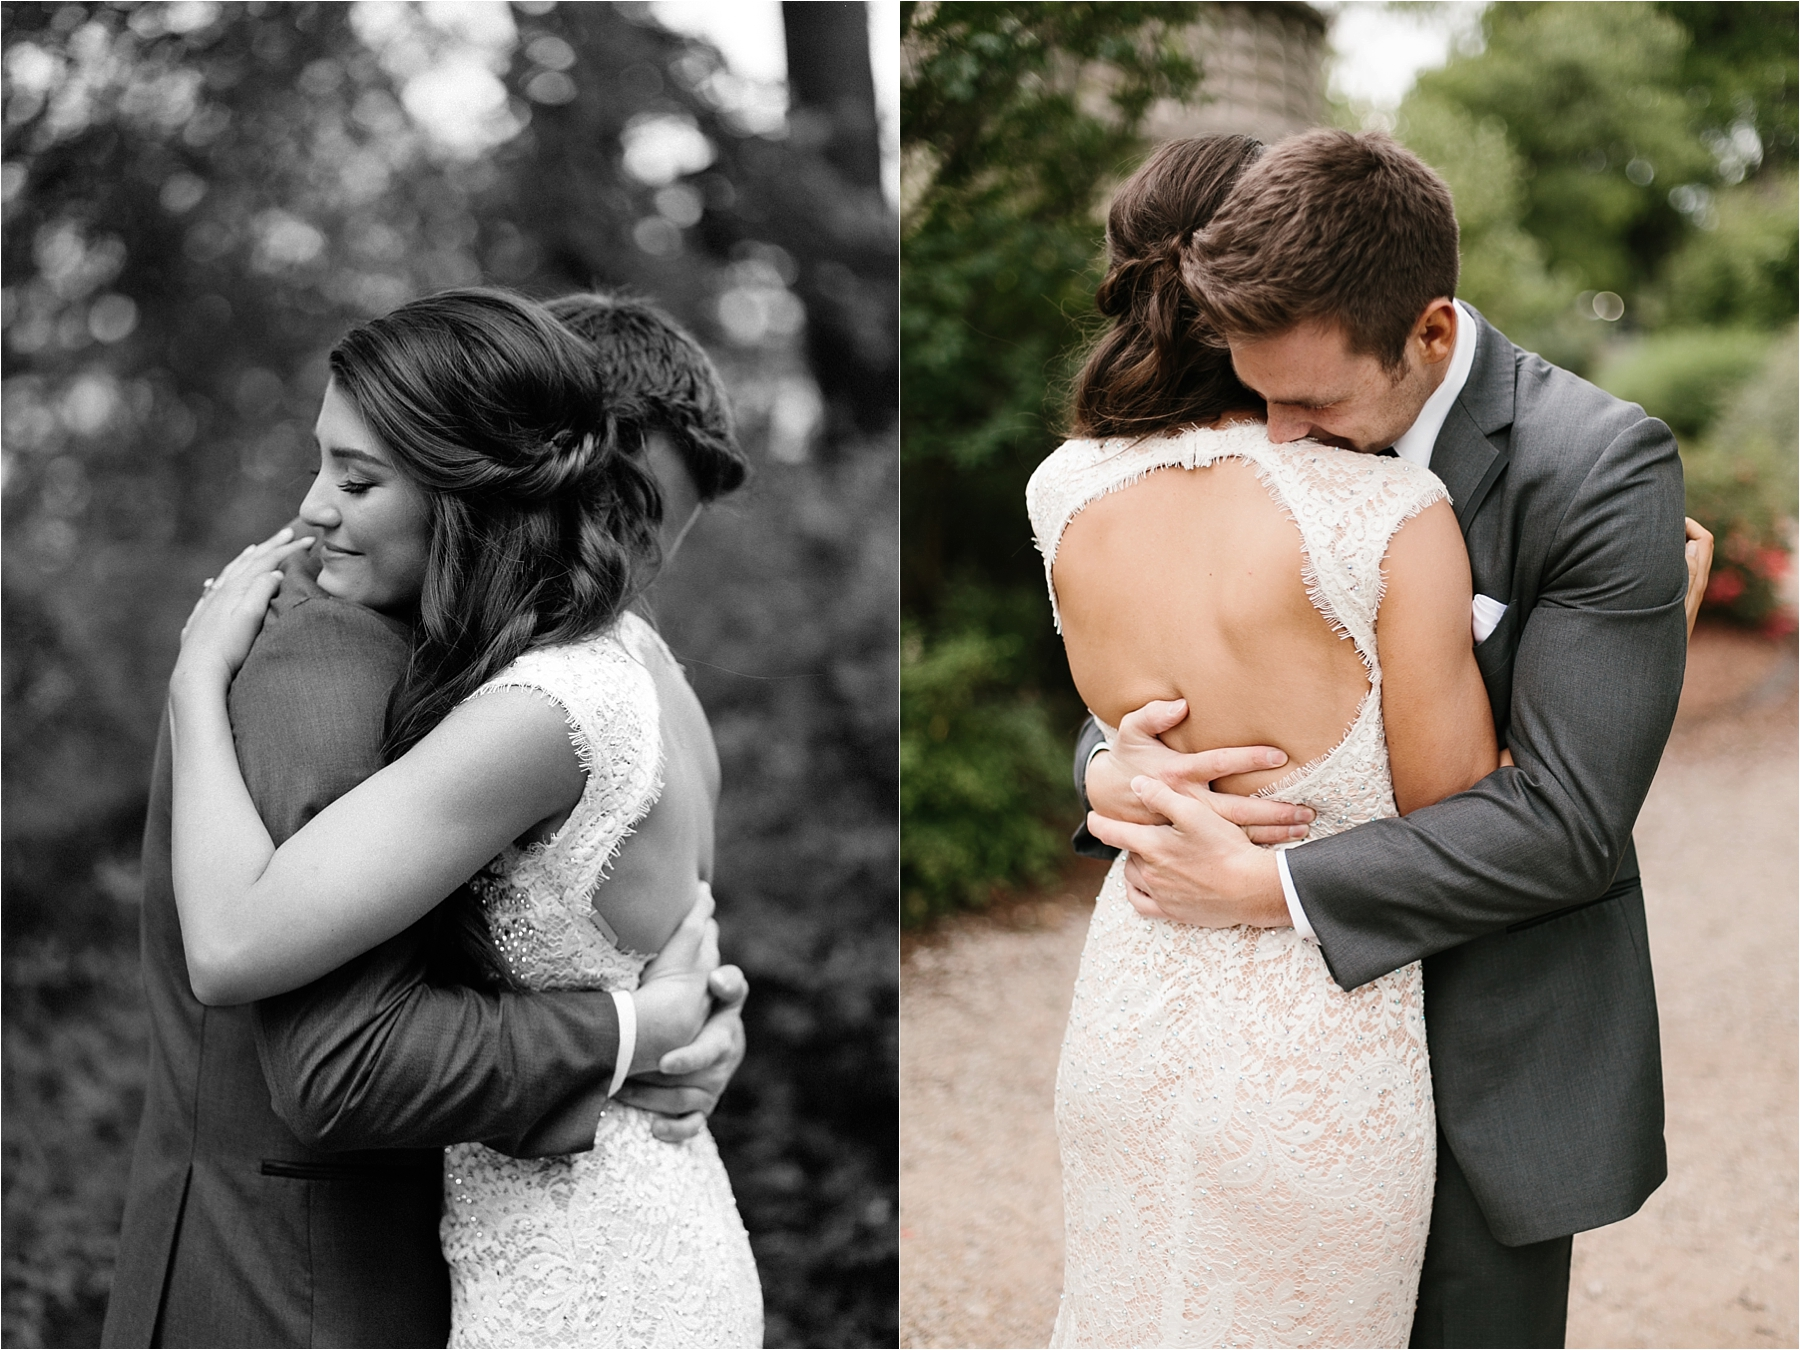 Devyn + Caden __ a Dallas Arboretum Garden Style Wedding by North Texas Wedding Photographer Rachel Meagan Photography __ 024